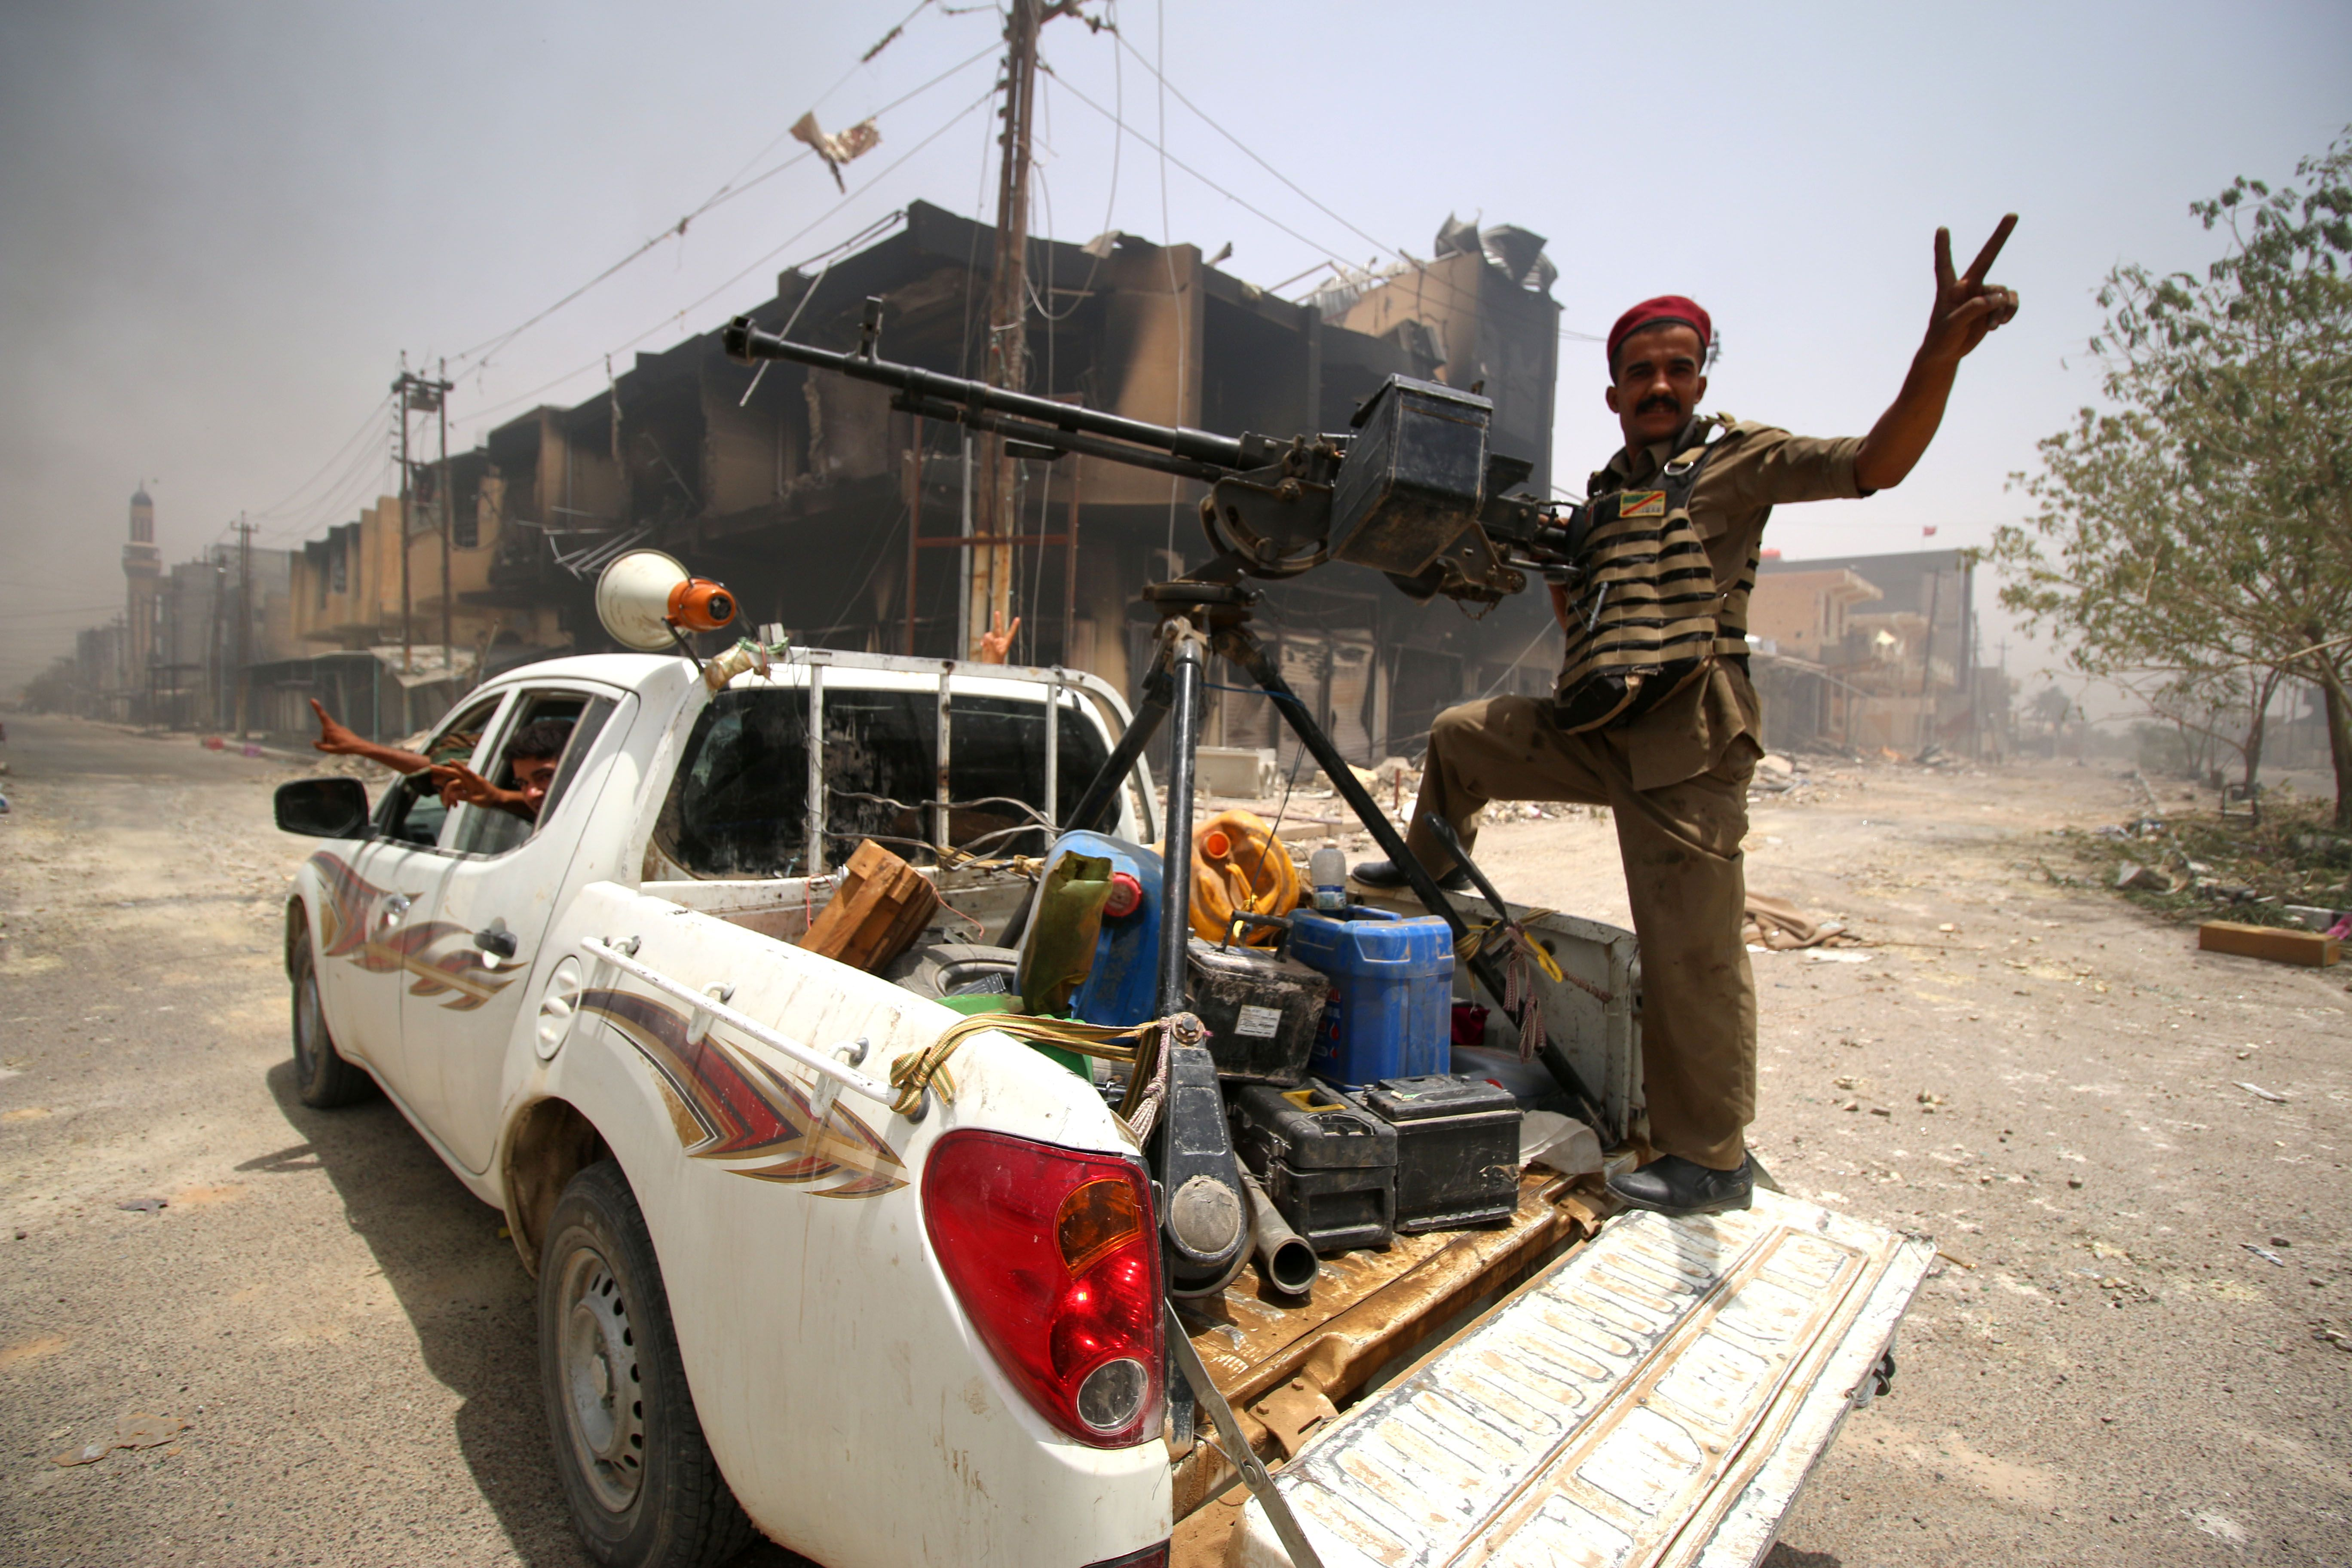 Fighters supporting government forces patrol a street in Fallujah, Iraq, on June 28, 2016, after Iraqi forces retook the city from the Islamic State